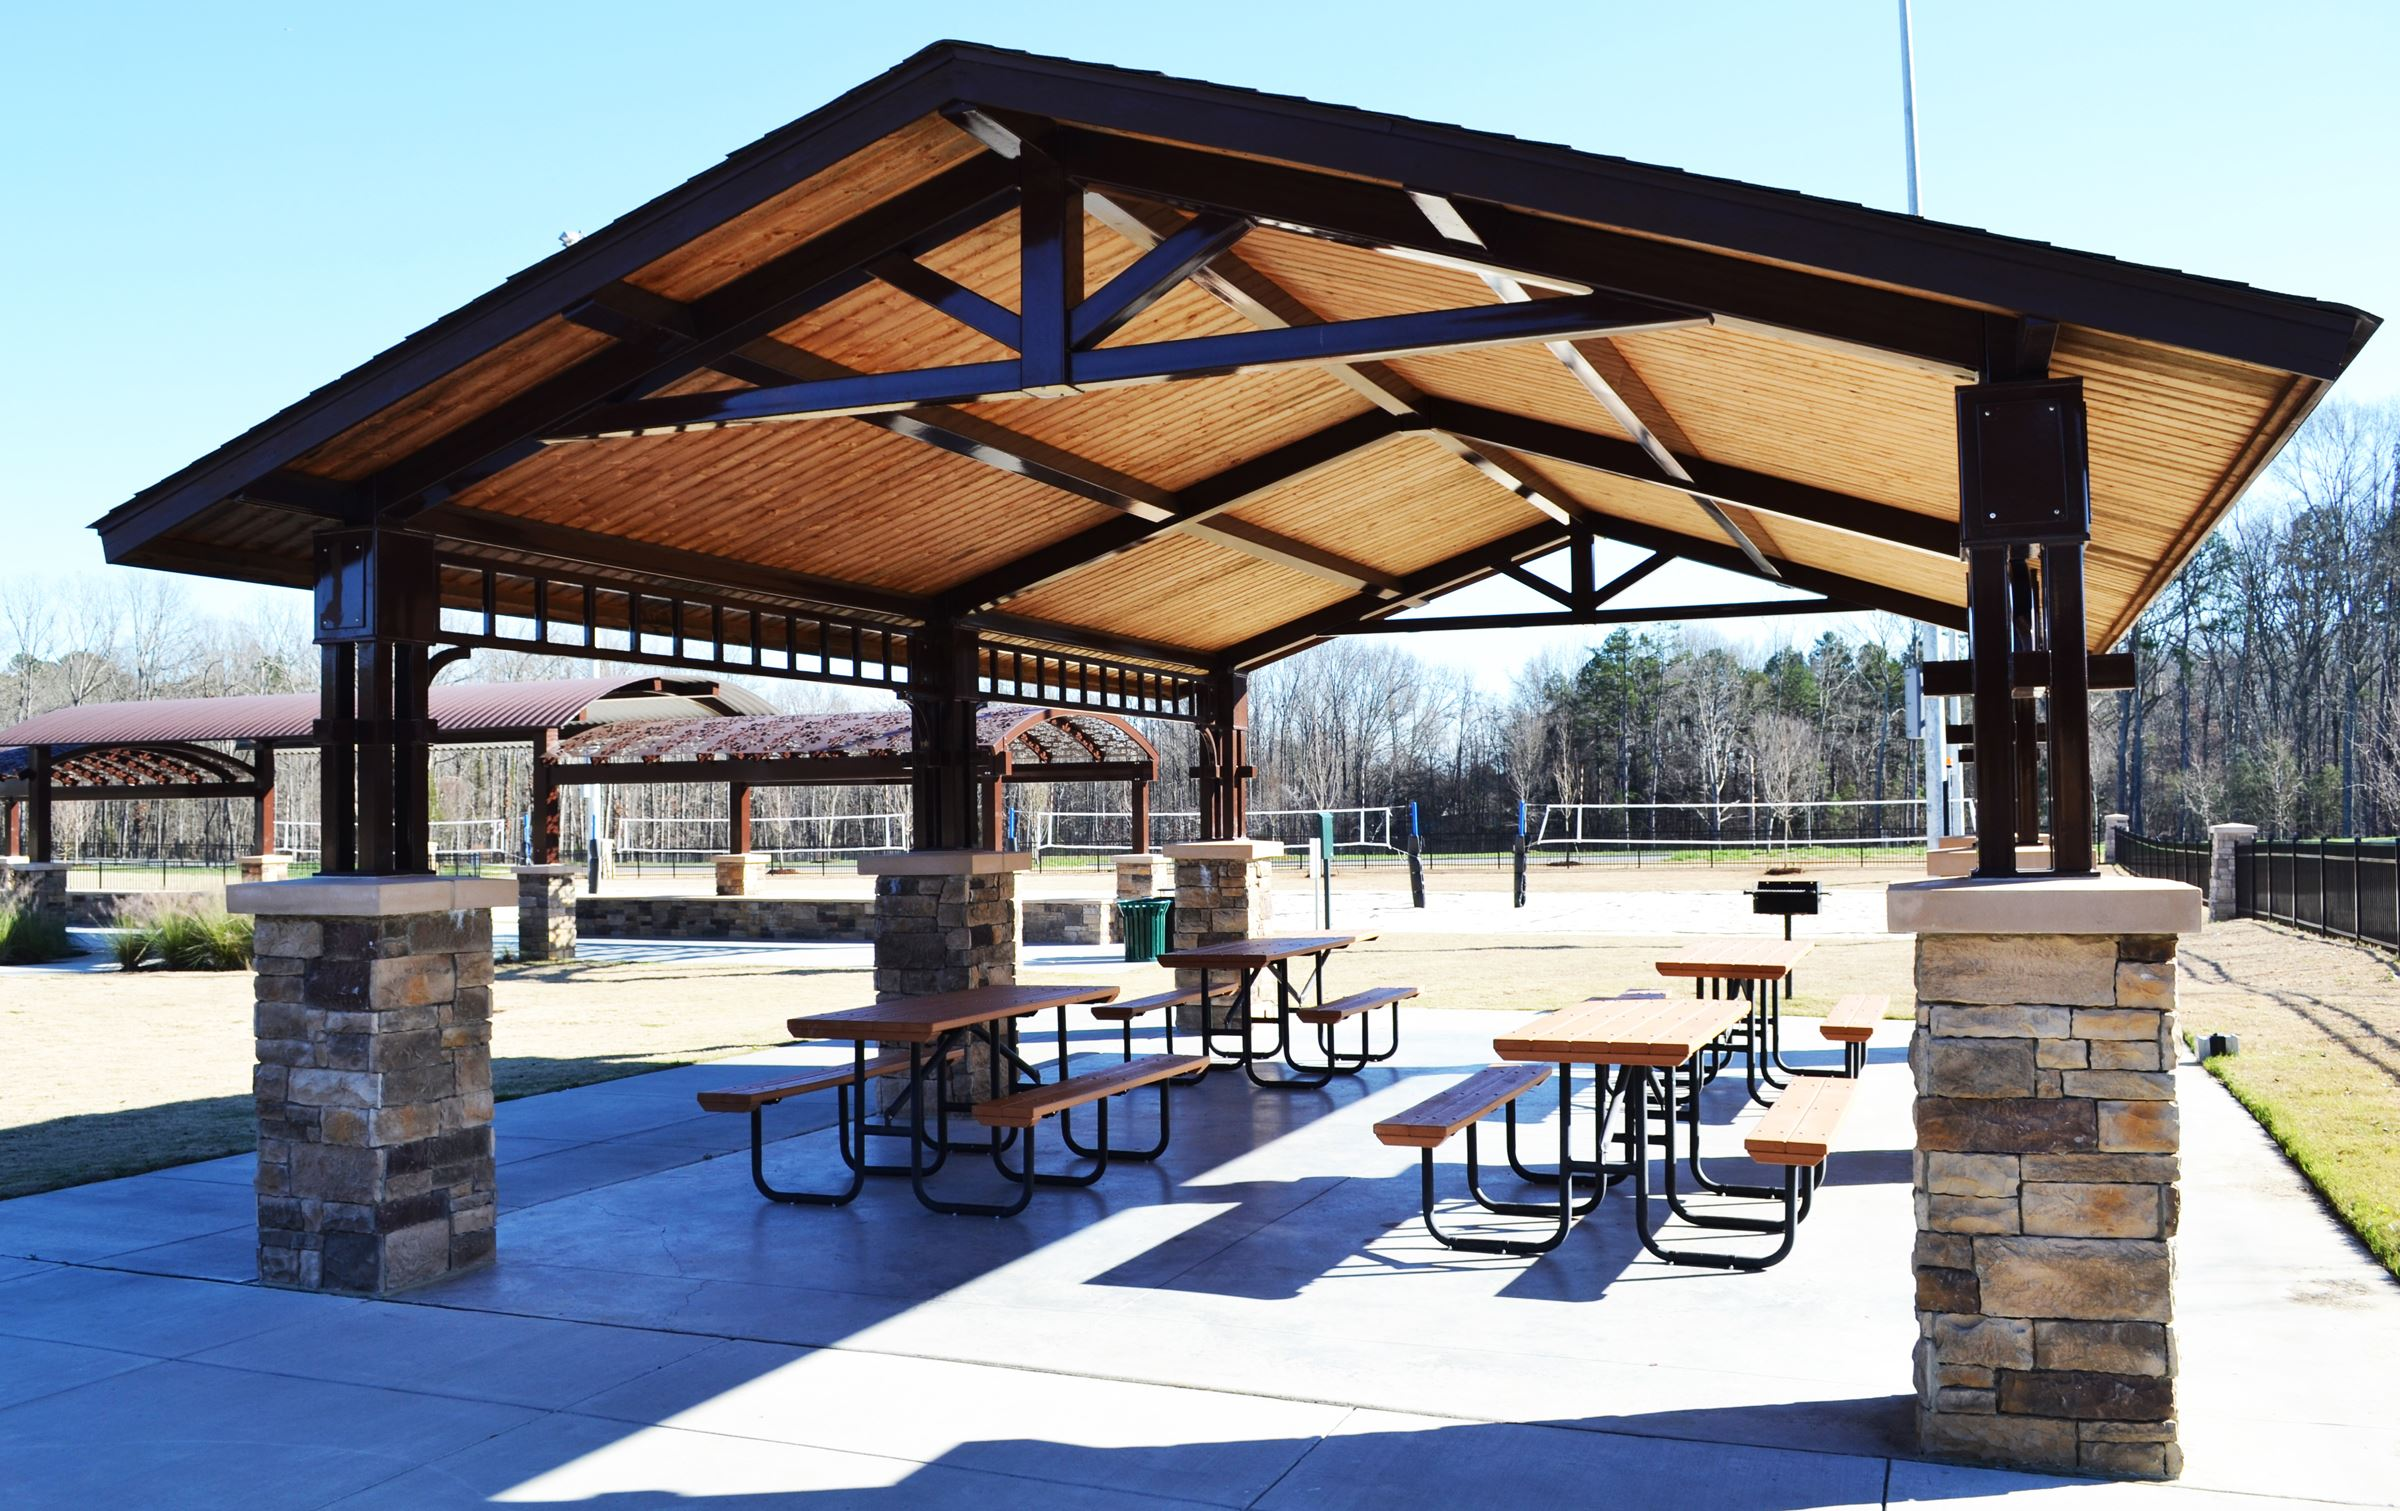 Chestnut Square Park shelter